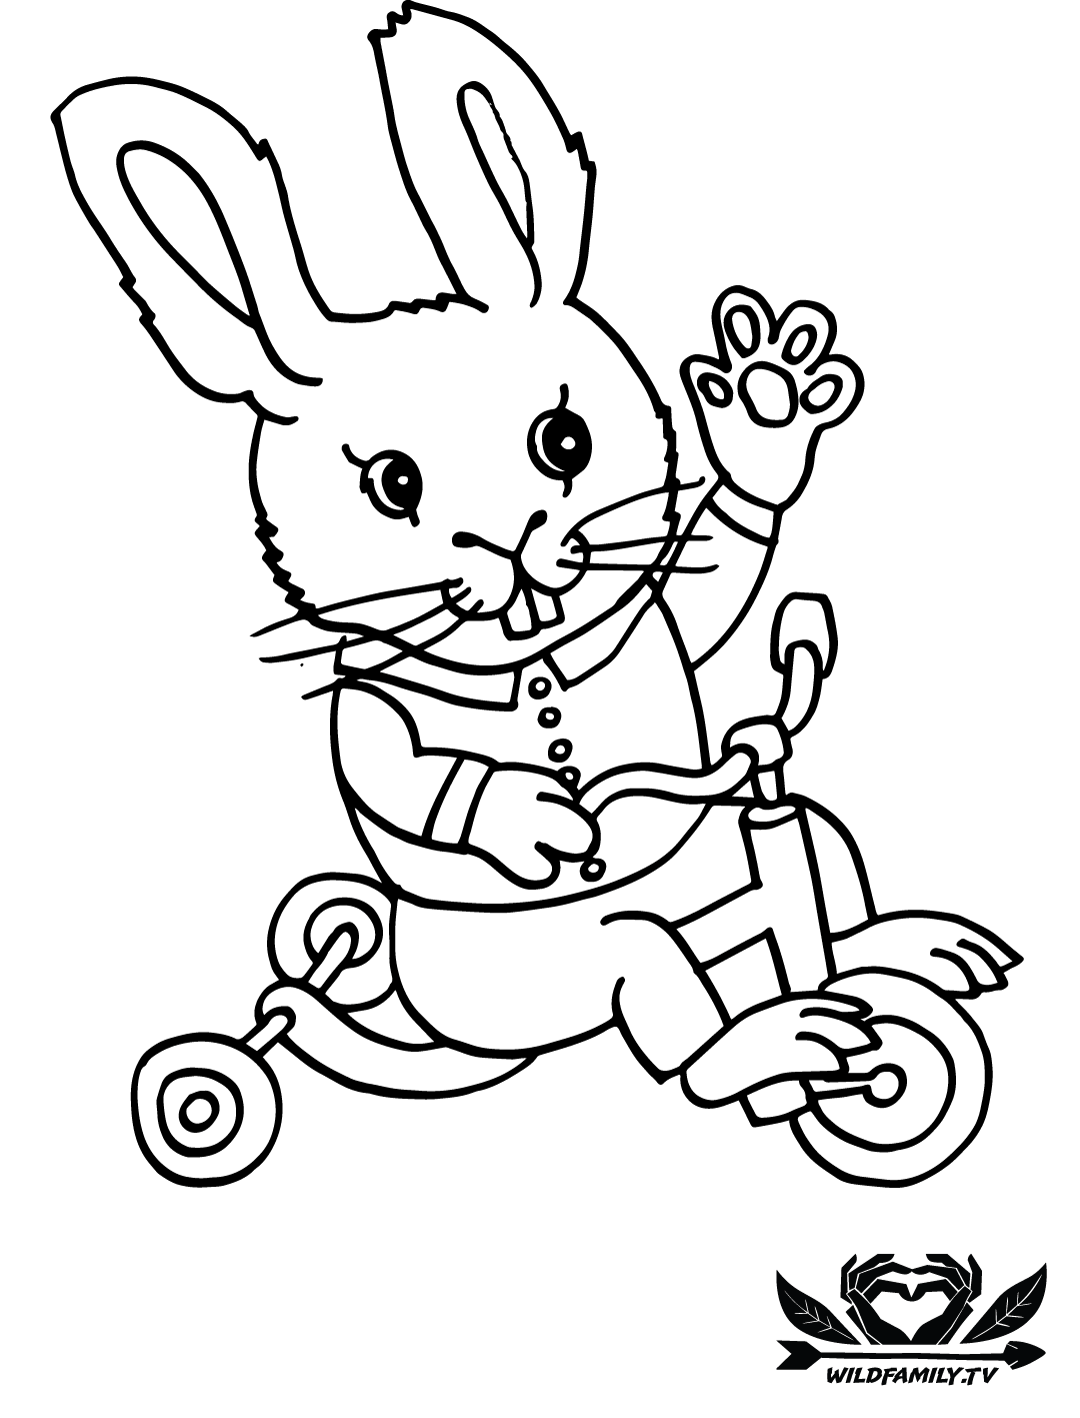 1080x1418 Wild Family Coloring Pages For Kids